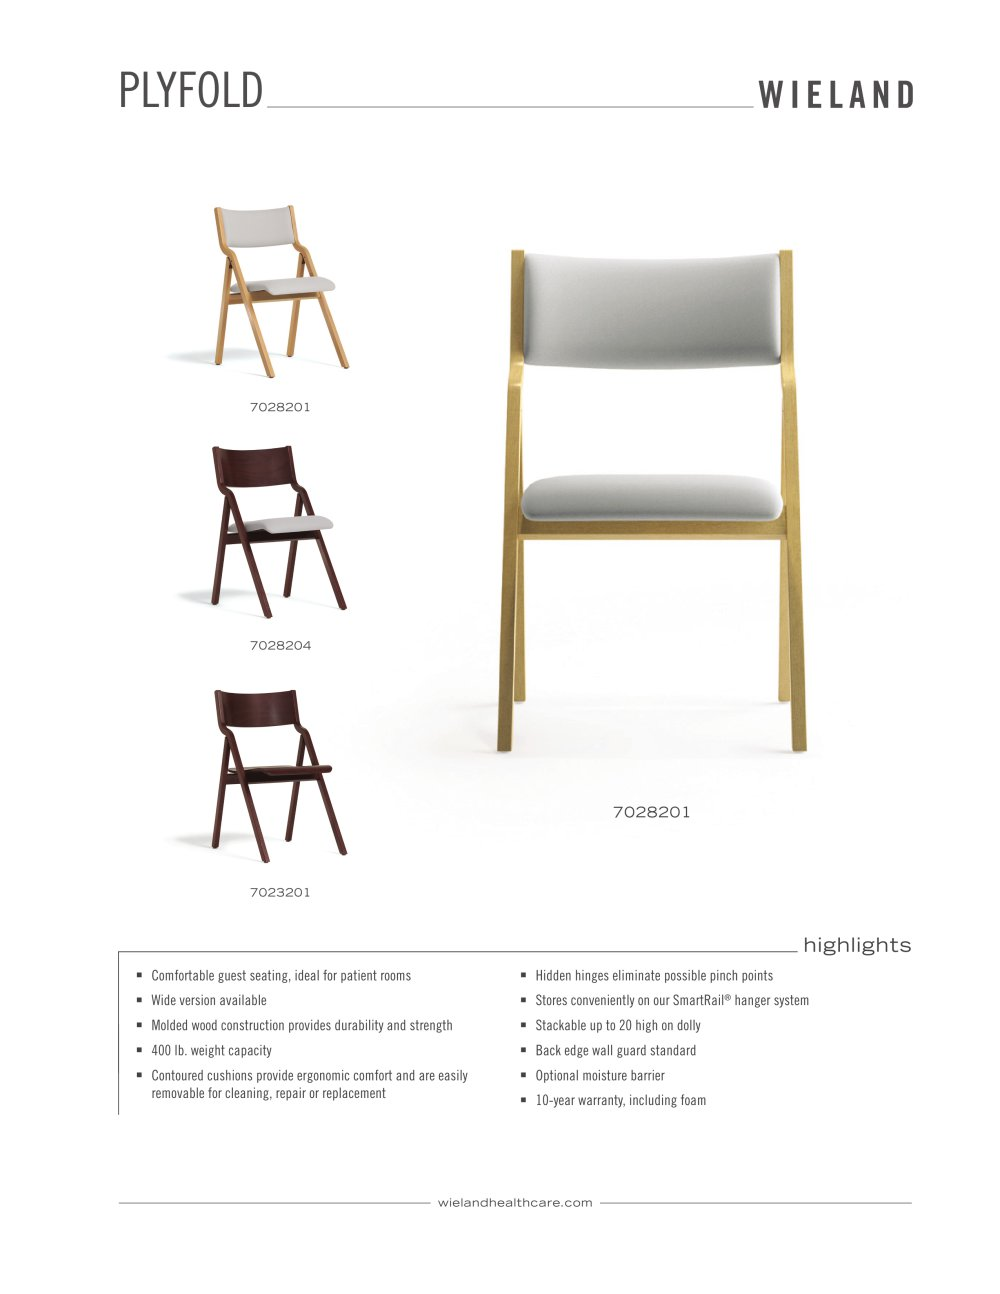 Plyfold Folding Chair   1 / 2 Pages